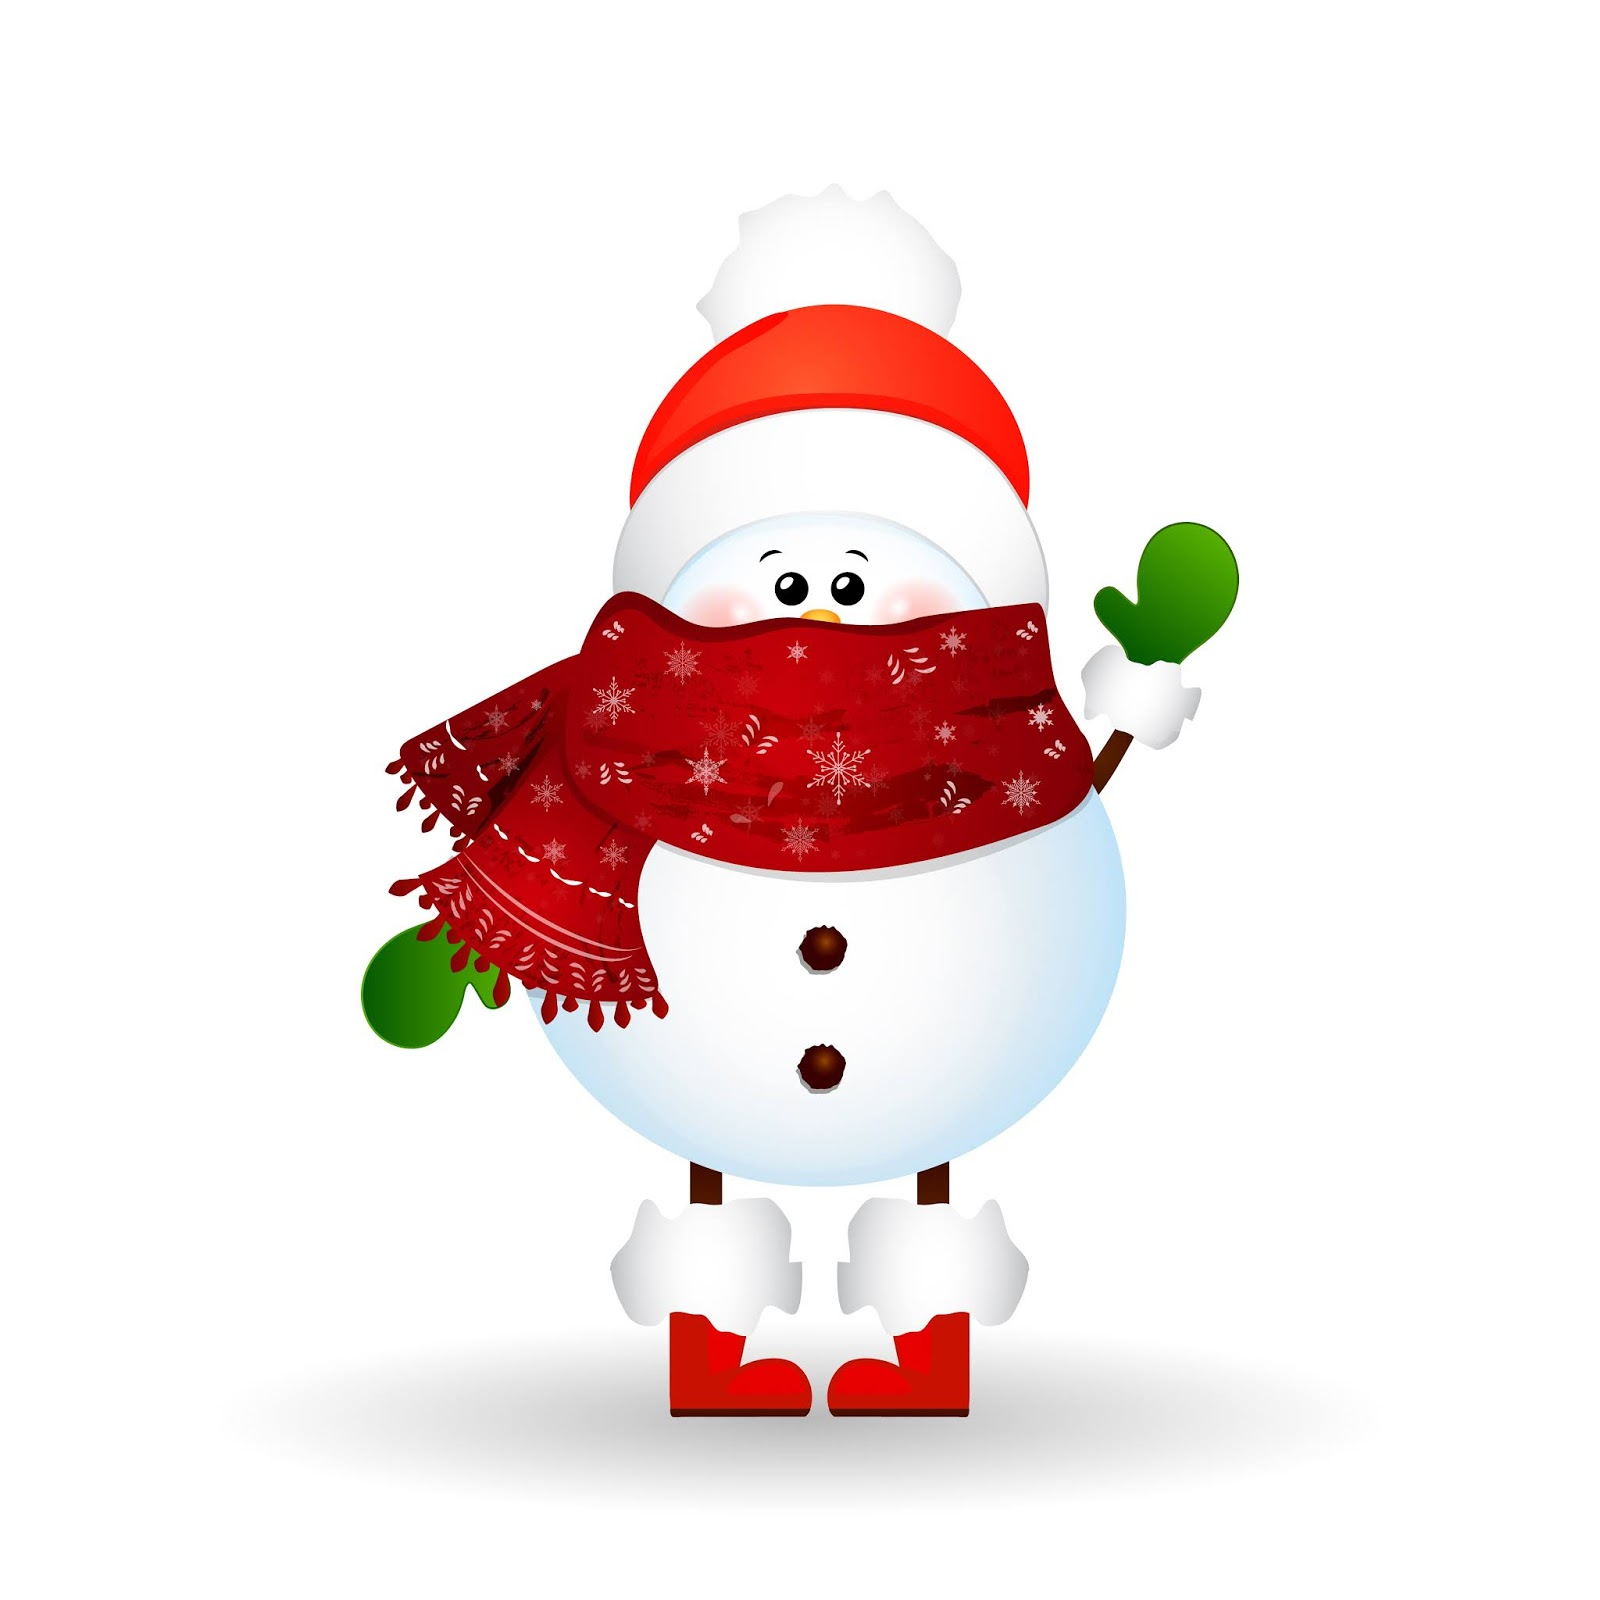 Christmas Cute Snowman With Scarf Red Santa Claus Hat Greetings Isolated White Background Vector Cartoon Illustration Free Download Vector CDR, AI, EPS and PNG Formats